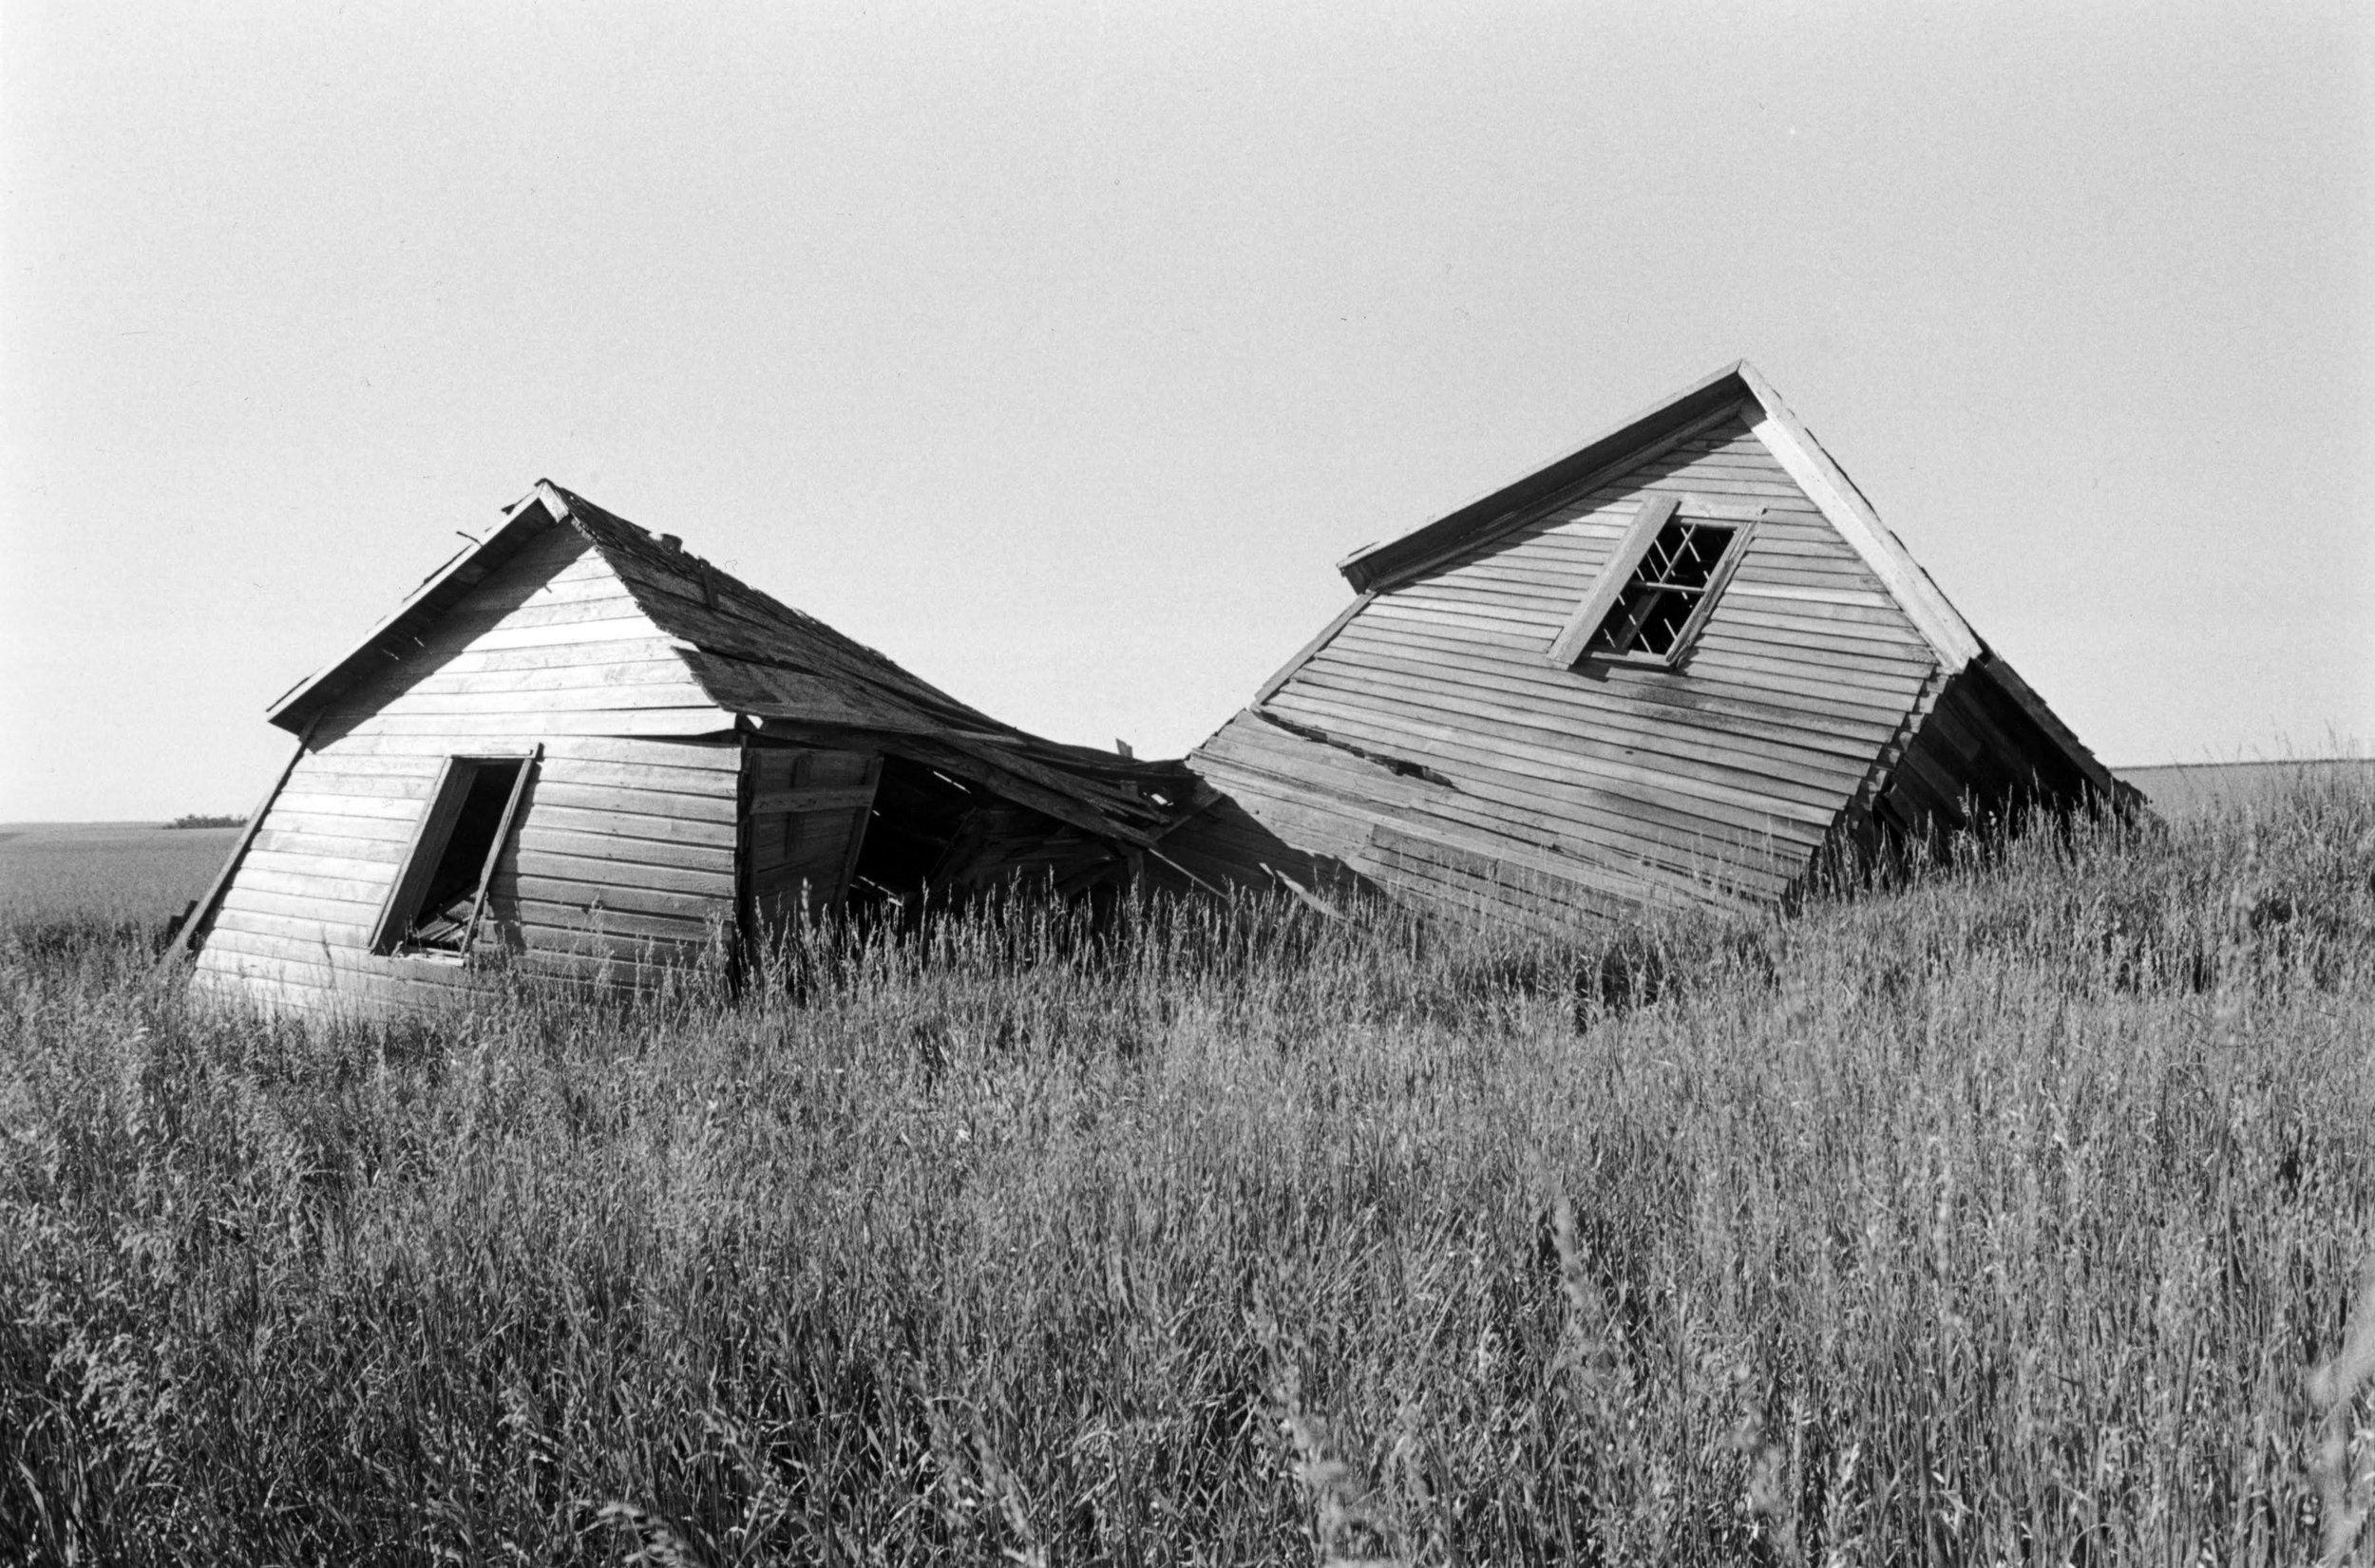 Peter Kayafas, North Dakota, 2010, Gelatin Silver print, 16 x 20 inches  Courtesy the artist and Sasha Wolf Projects, New York / ©Peter Kayafas